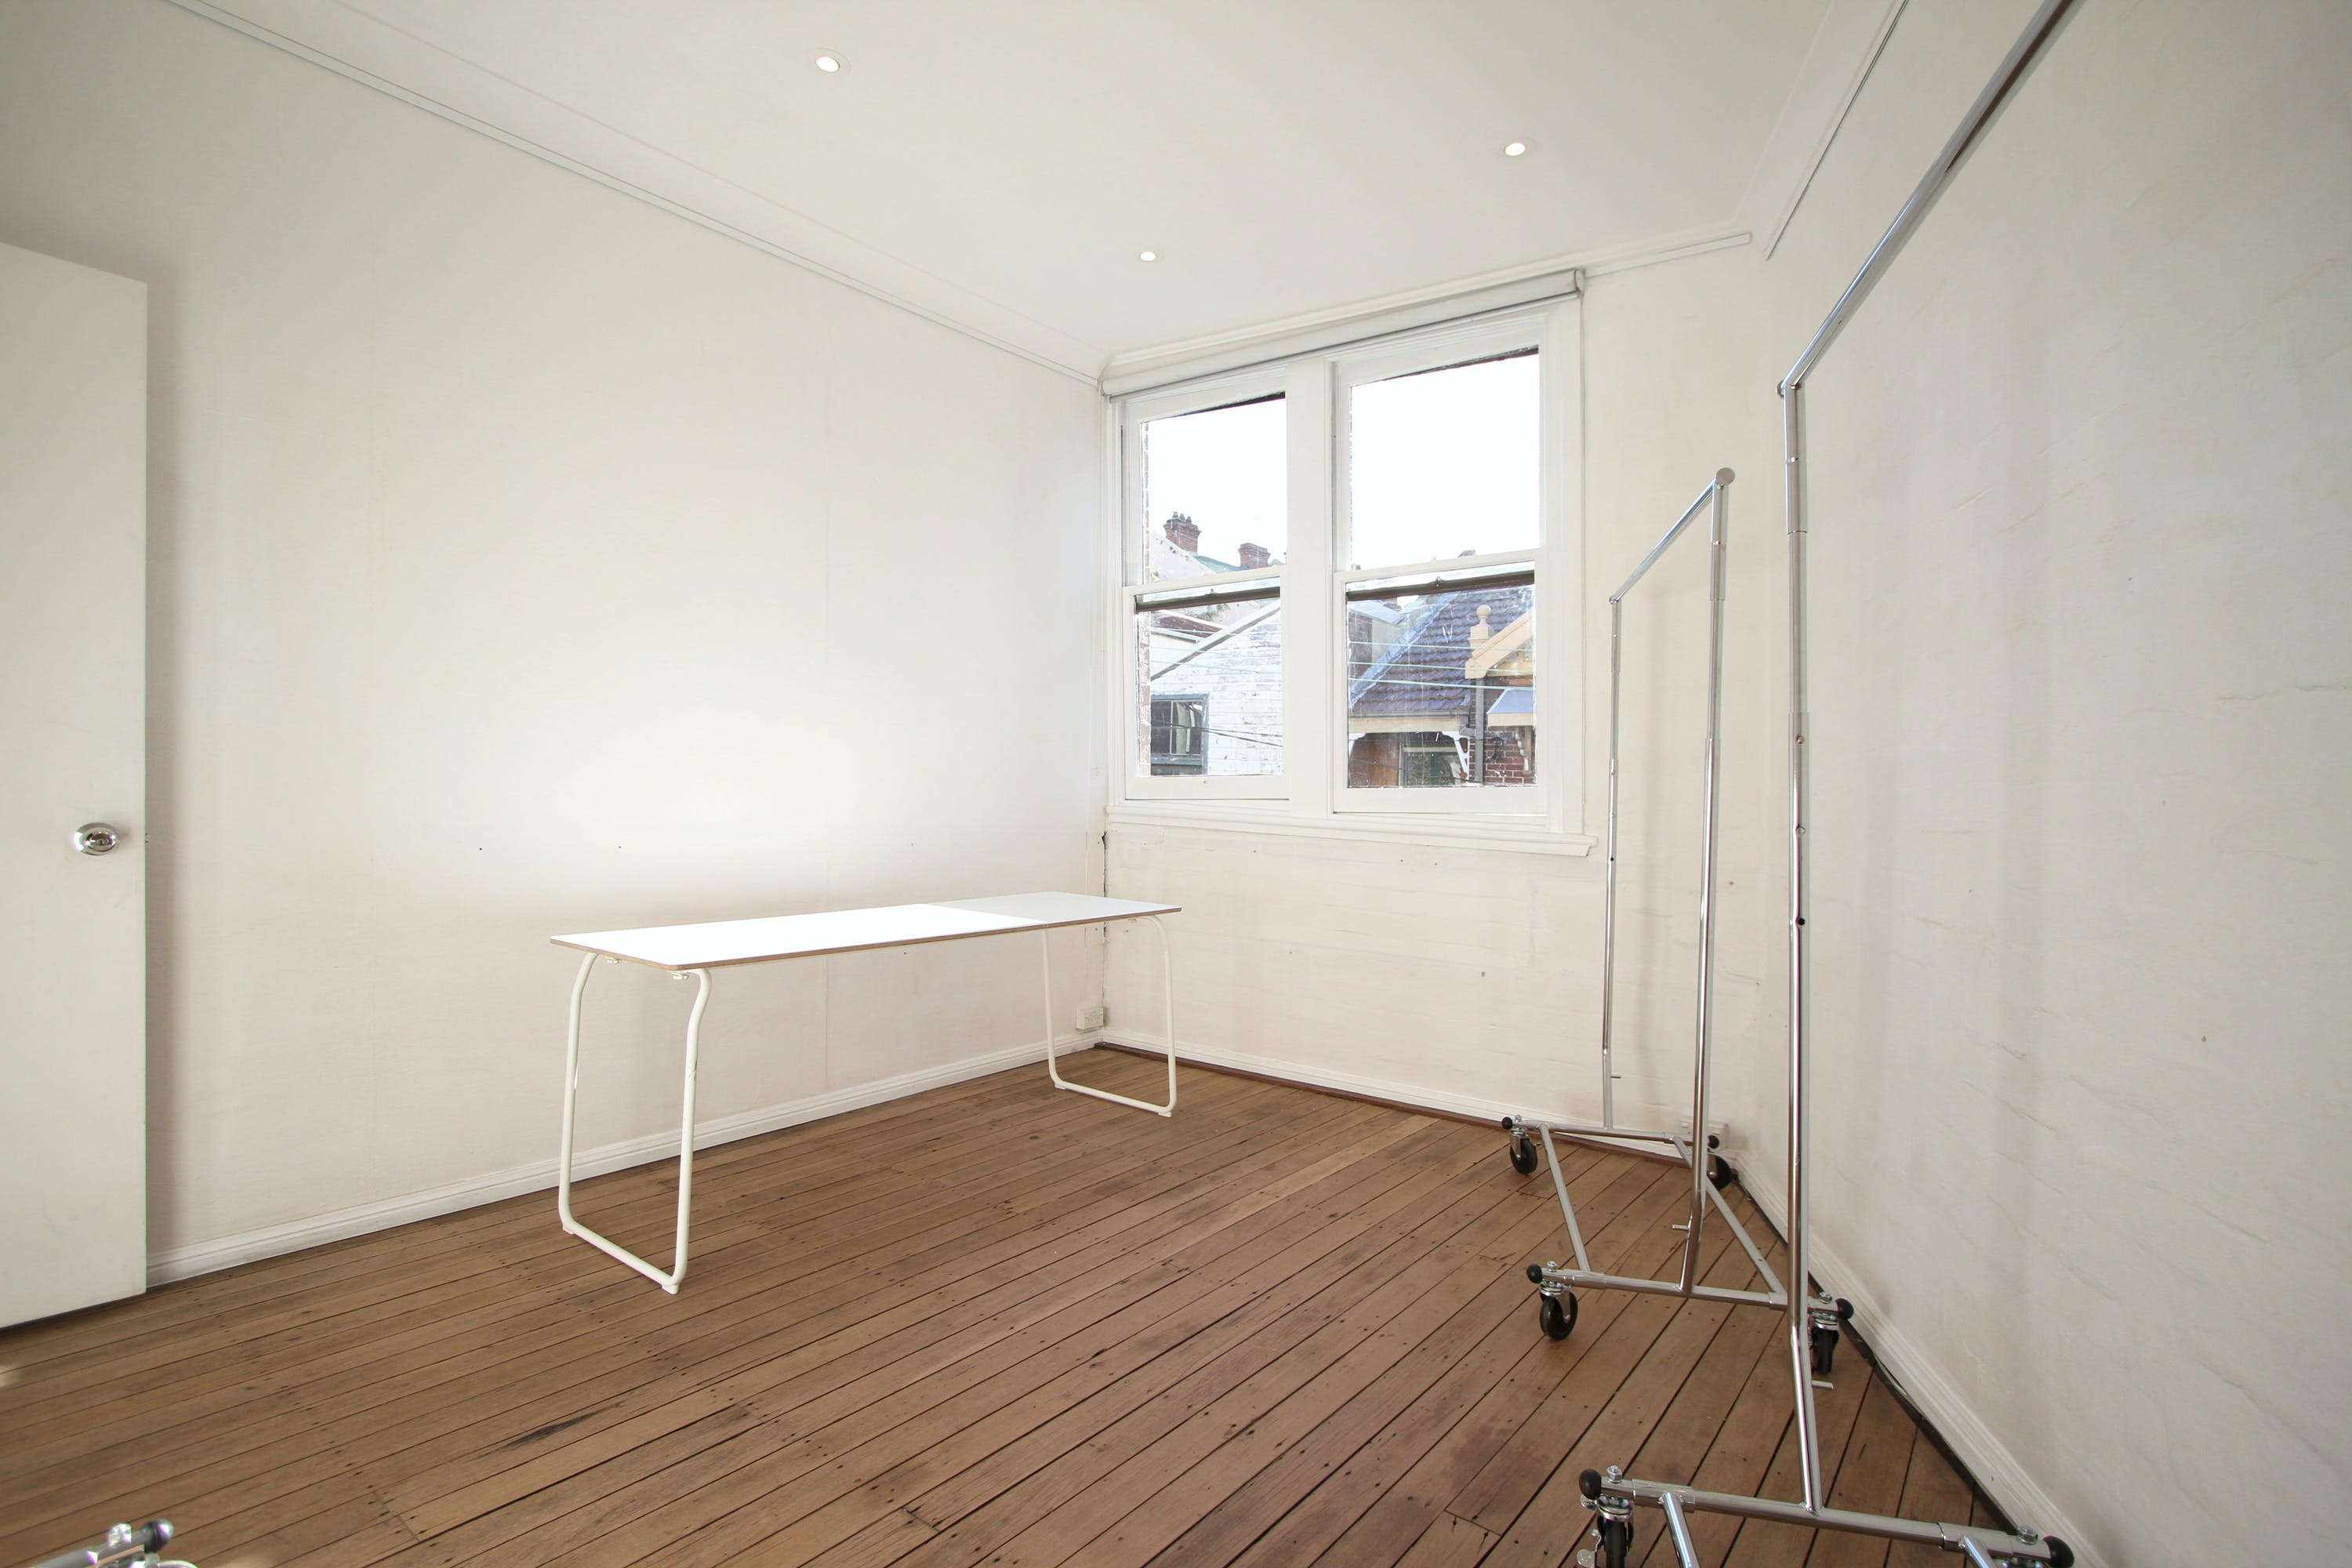 Comber Street Studios (Studio 5), meeting room at Comber Street Studios, image 5